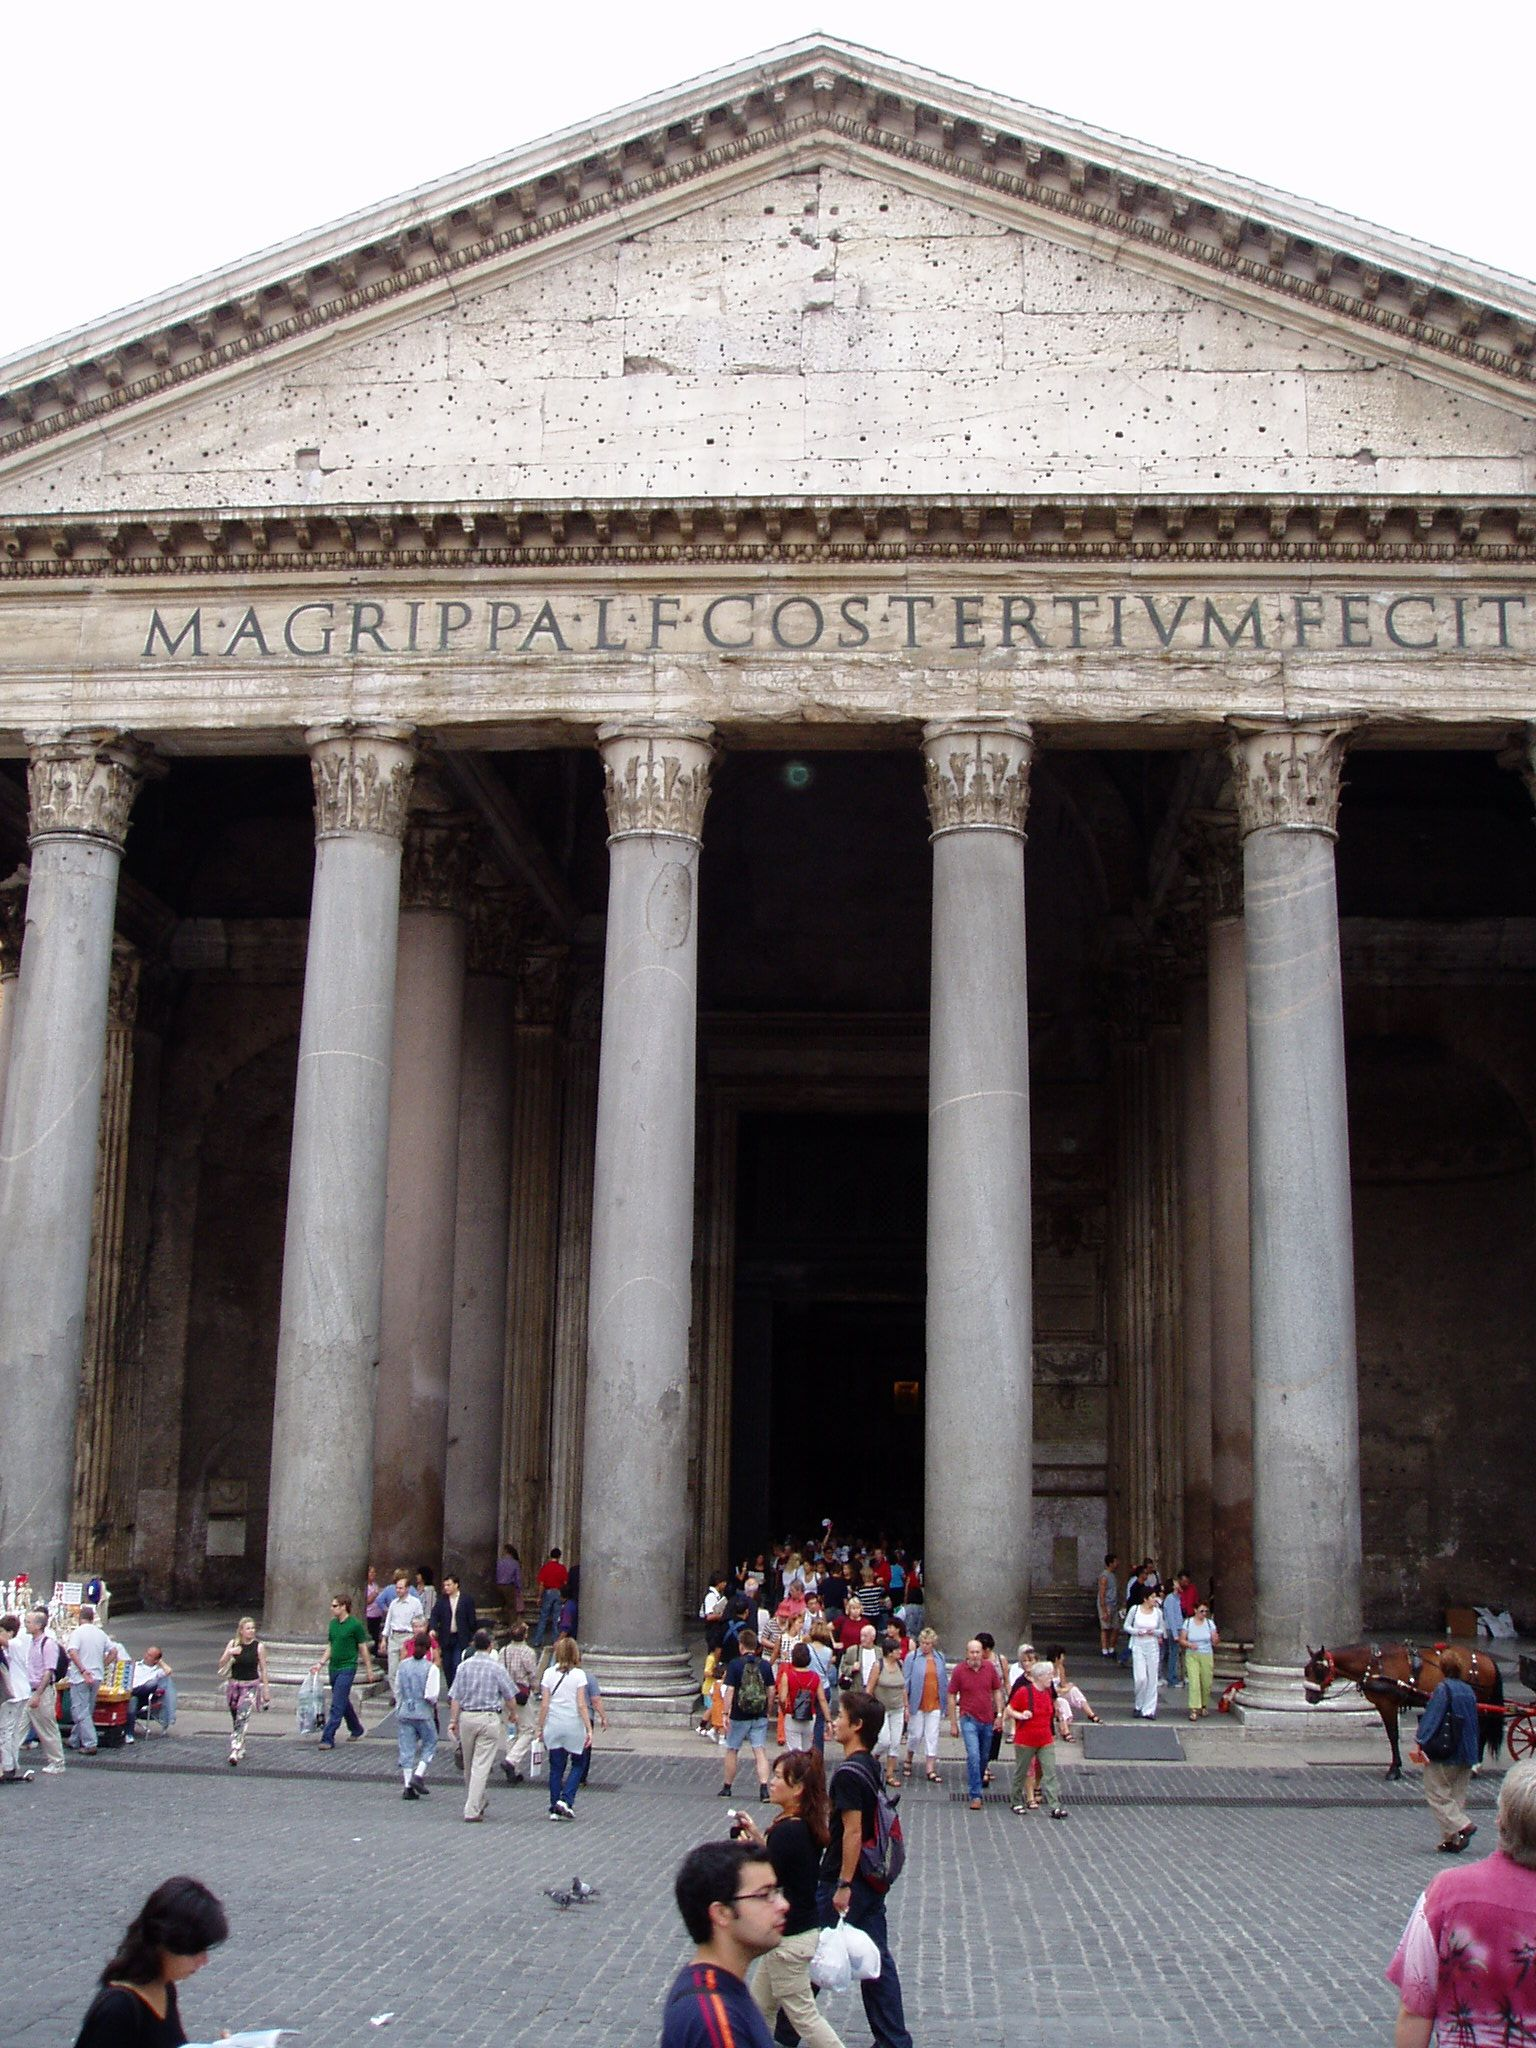 2000 Years Old, Still In Use, Rome, Italy